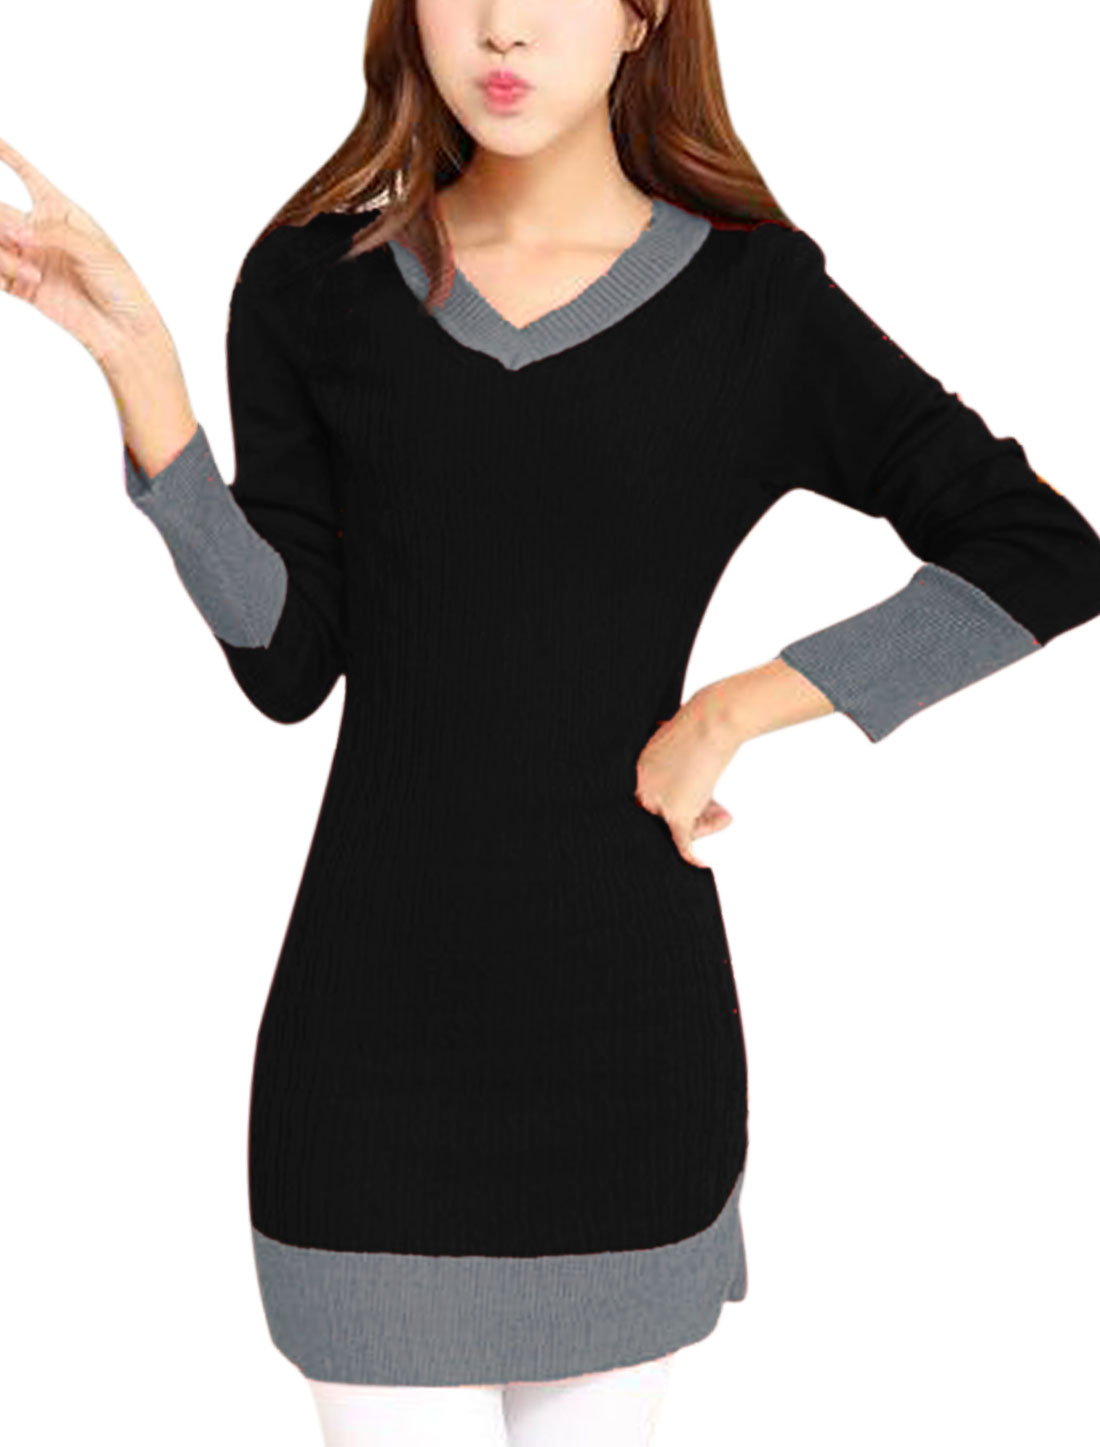 Ladies Black Long Sleeves V Neck Contrast Color Casual Knitted Dress S